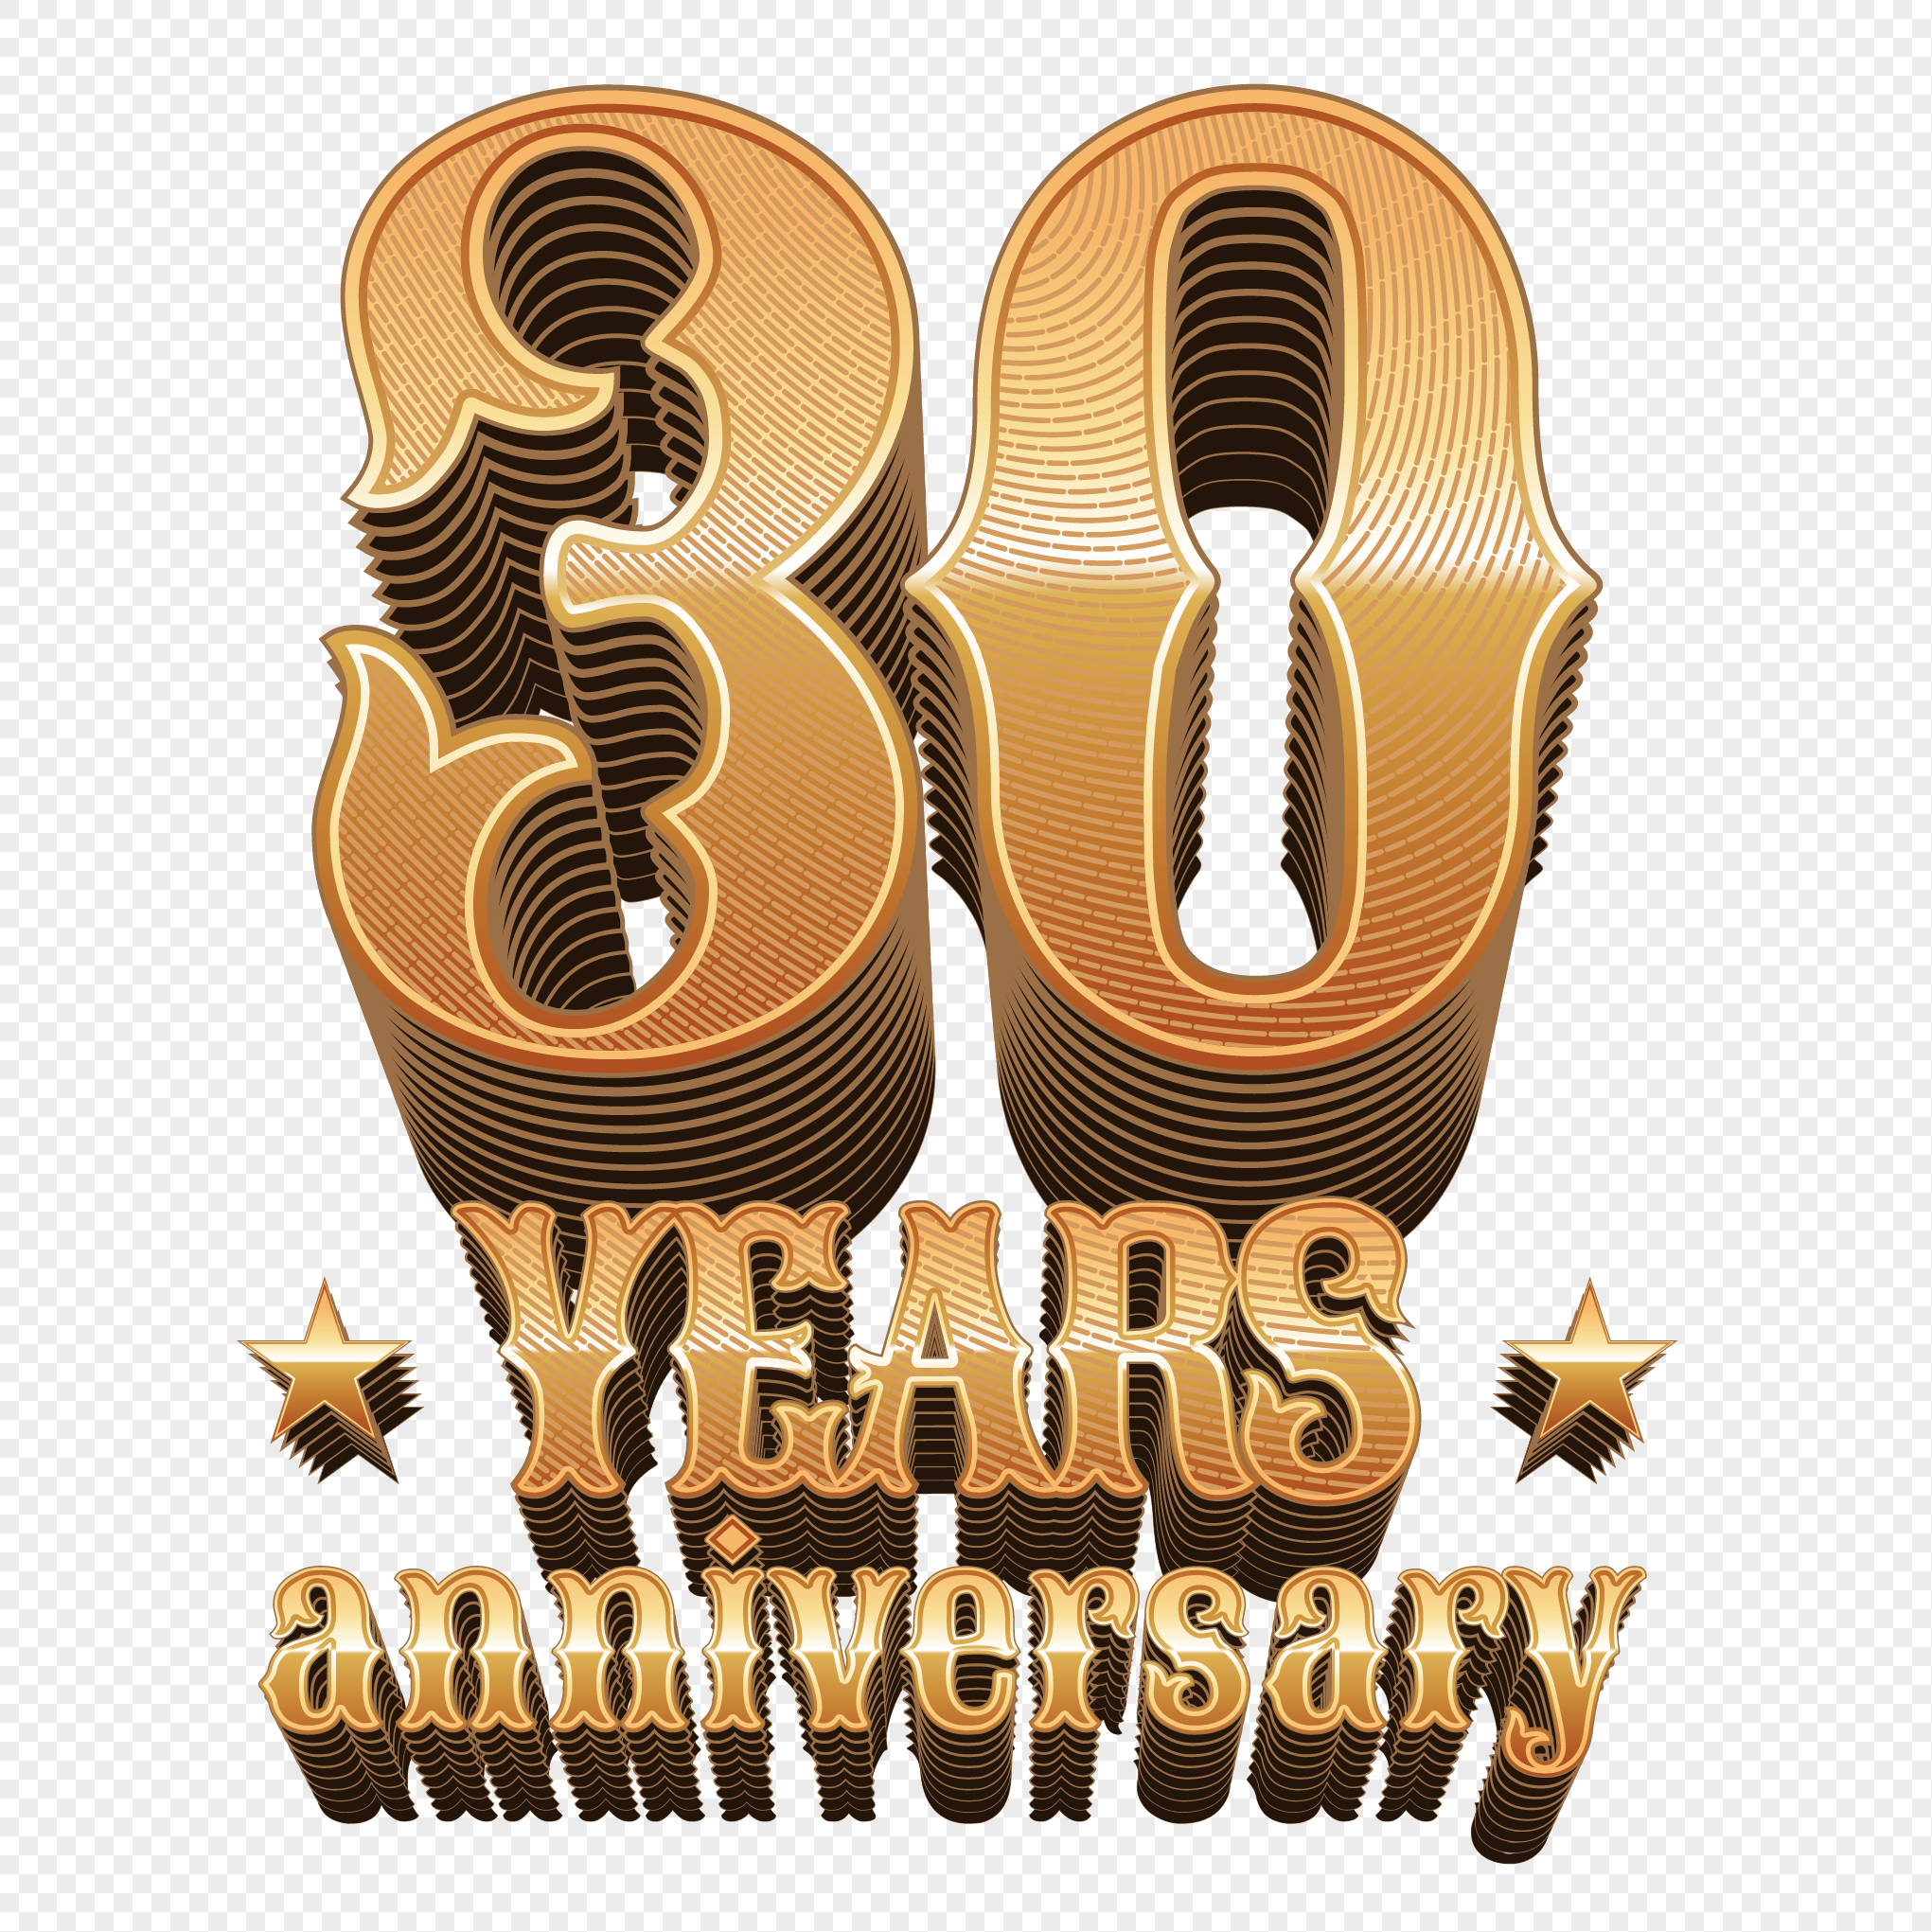 Stereoscopic Gold Number 30th Anniversary Vectorial Elements